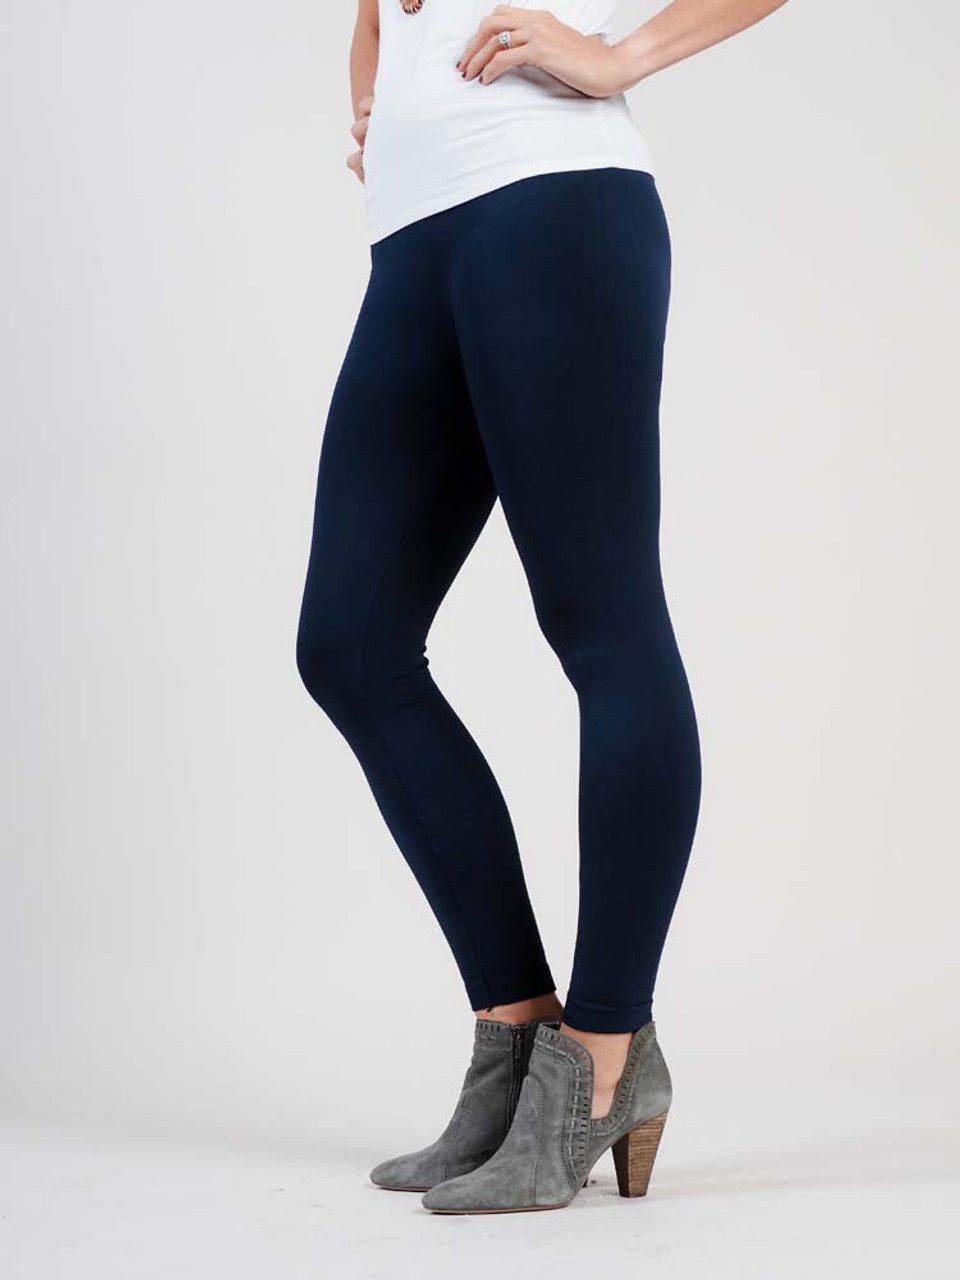 """Navy Comfortable and versitable fleece-lined leggings, breathable fabric, smooth mid-rise fit, seamless, flattering 4"""" waistband, full length cut with banded ankle"""